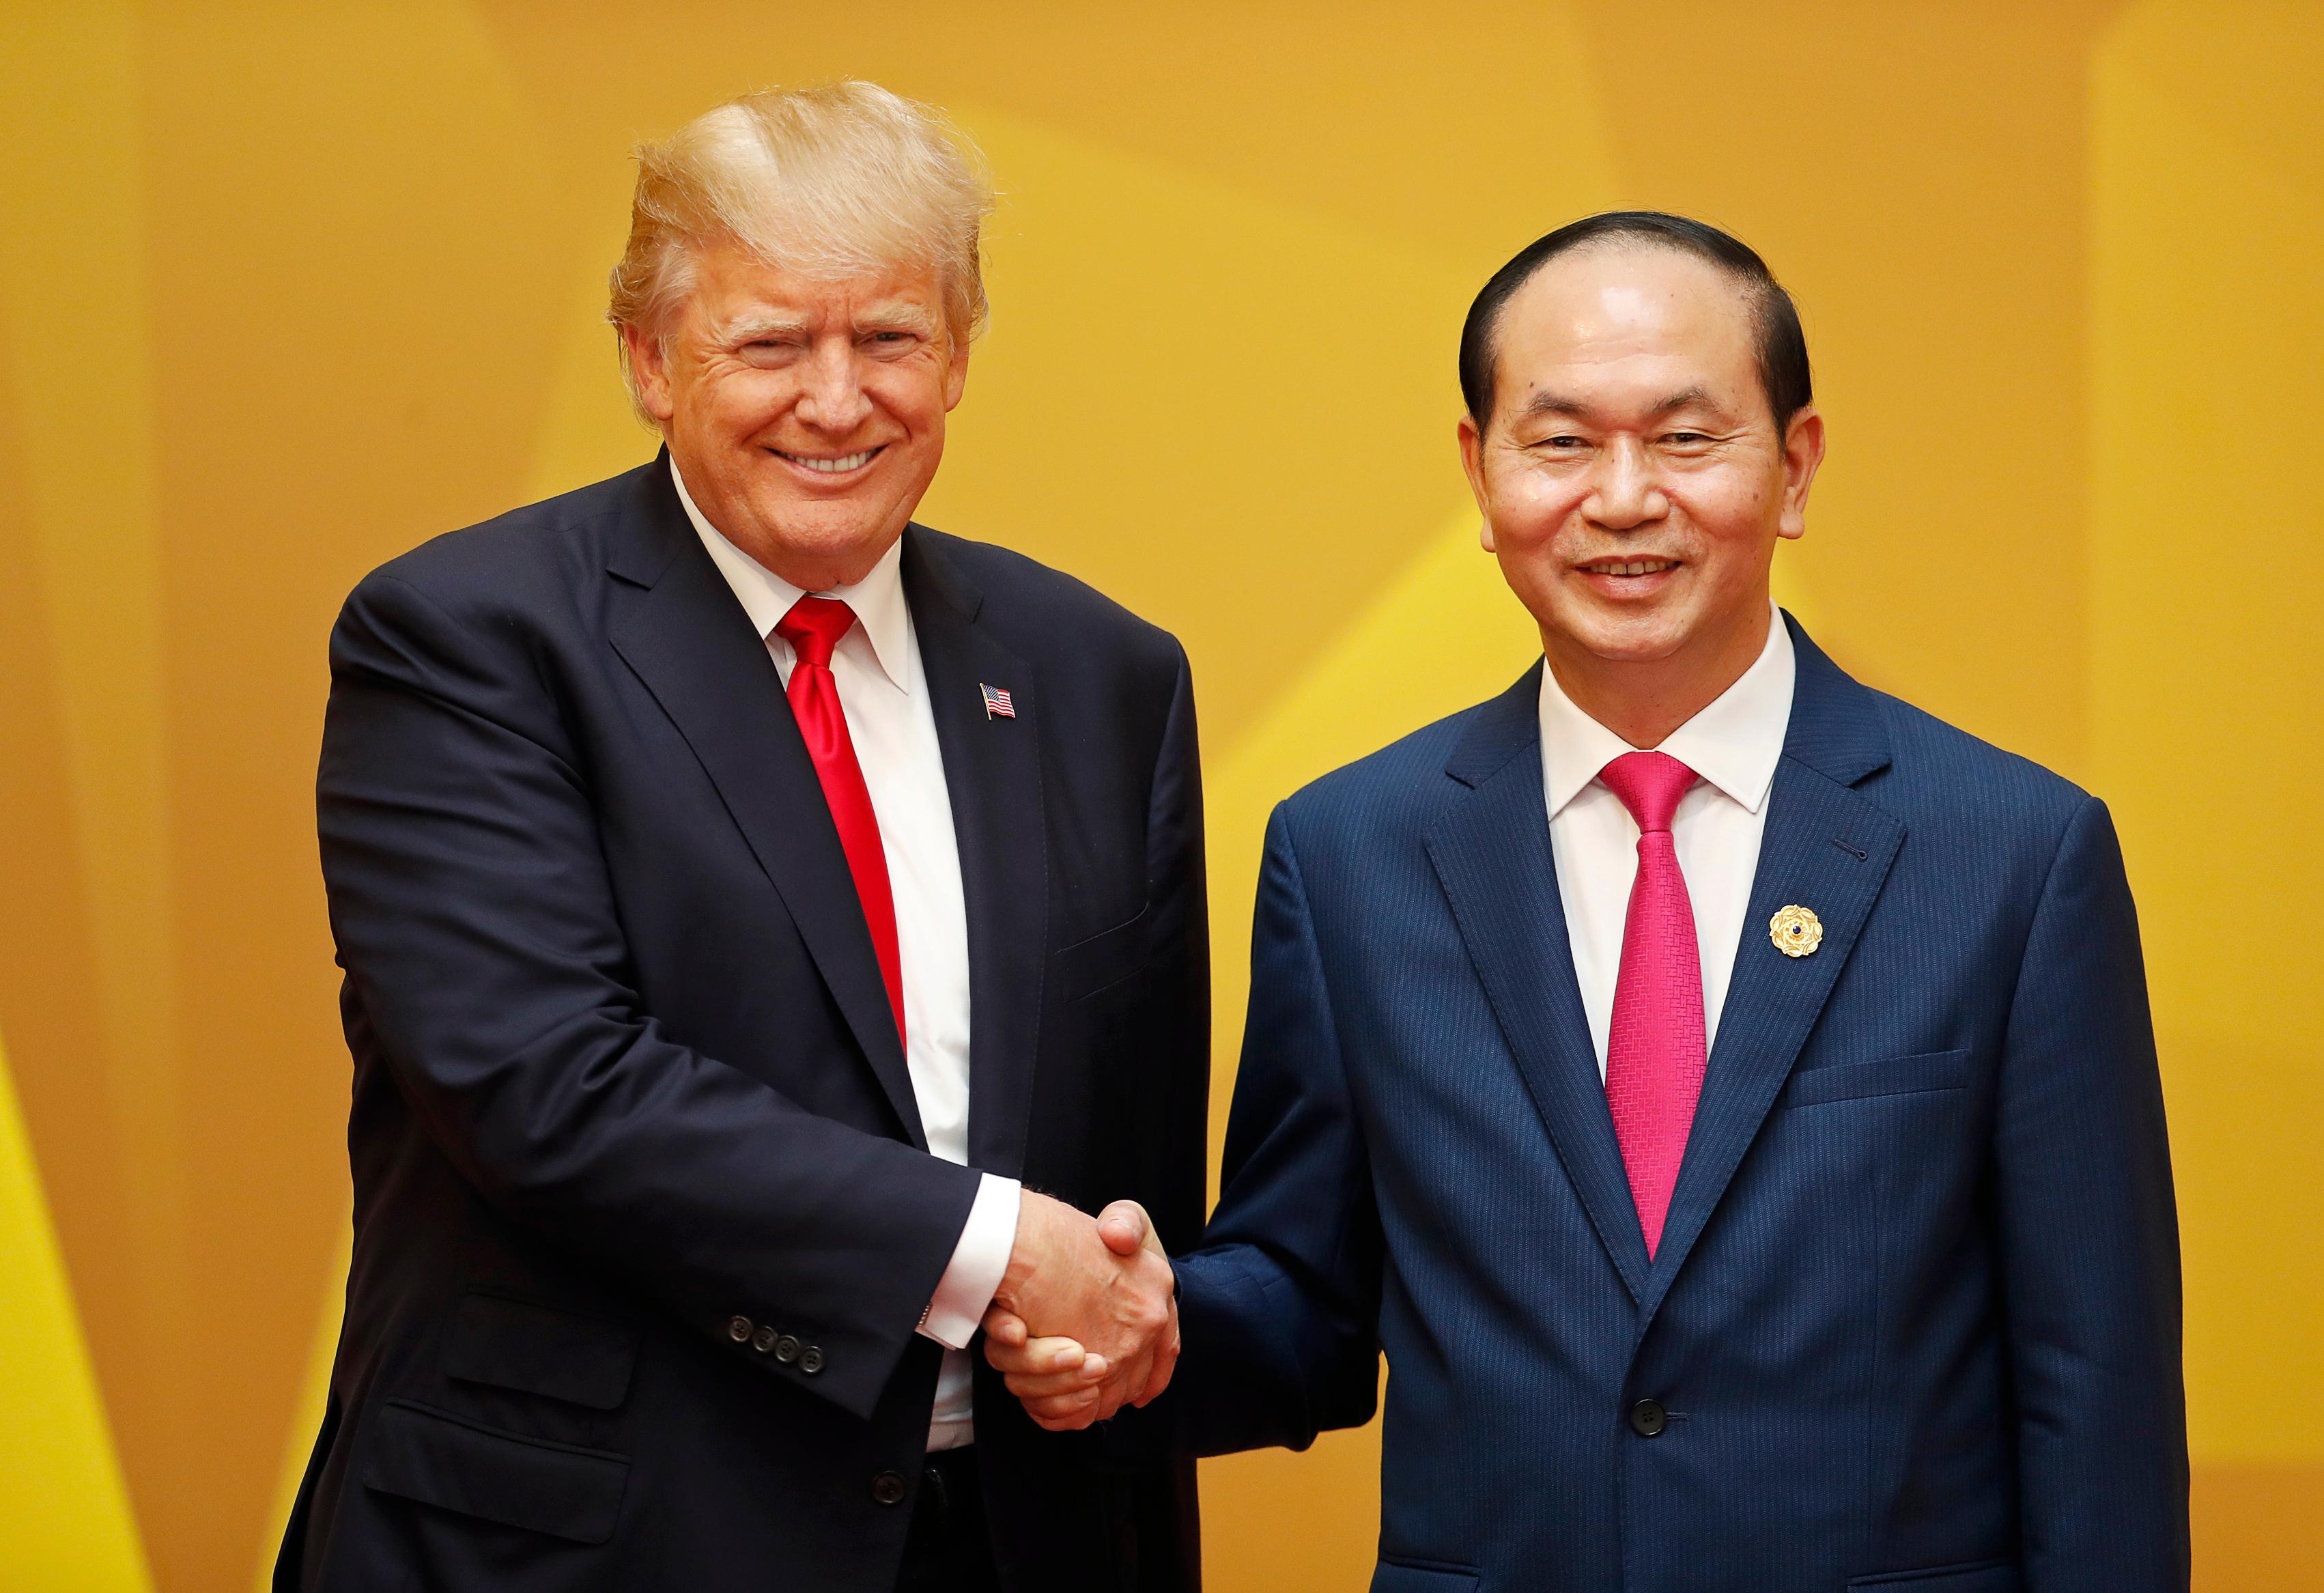 Vietnam's President Tran Dai Quang, right, shakes hands with U.S. President Donald Trump at the APEC Economic Leaders' Meeting in Danang, Saturday, Nov. 11, 2017. (Jorge Silva/Pool Photo via AP)